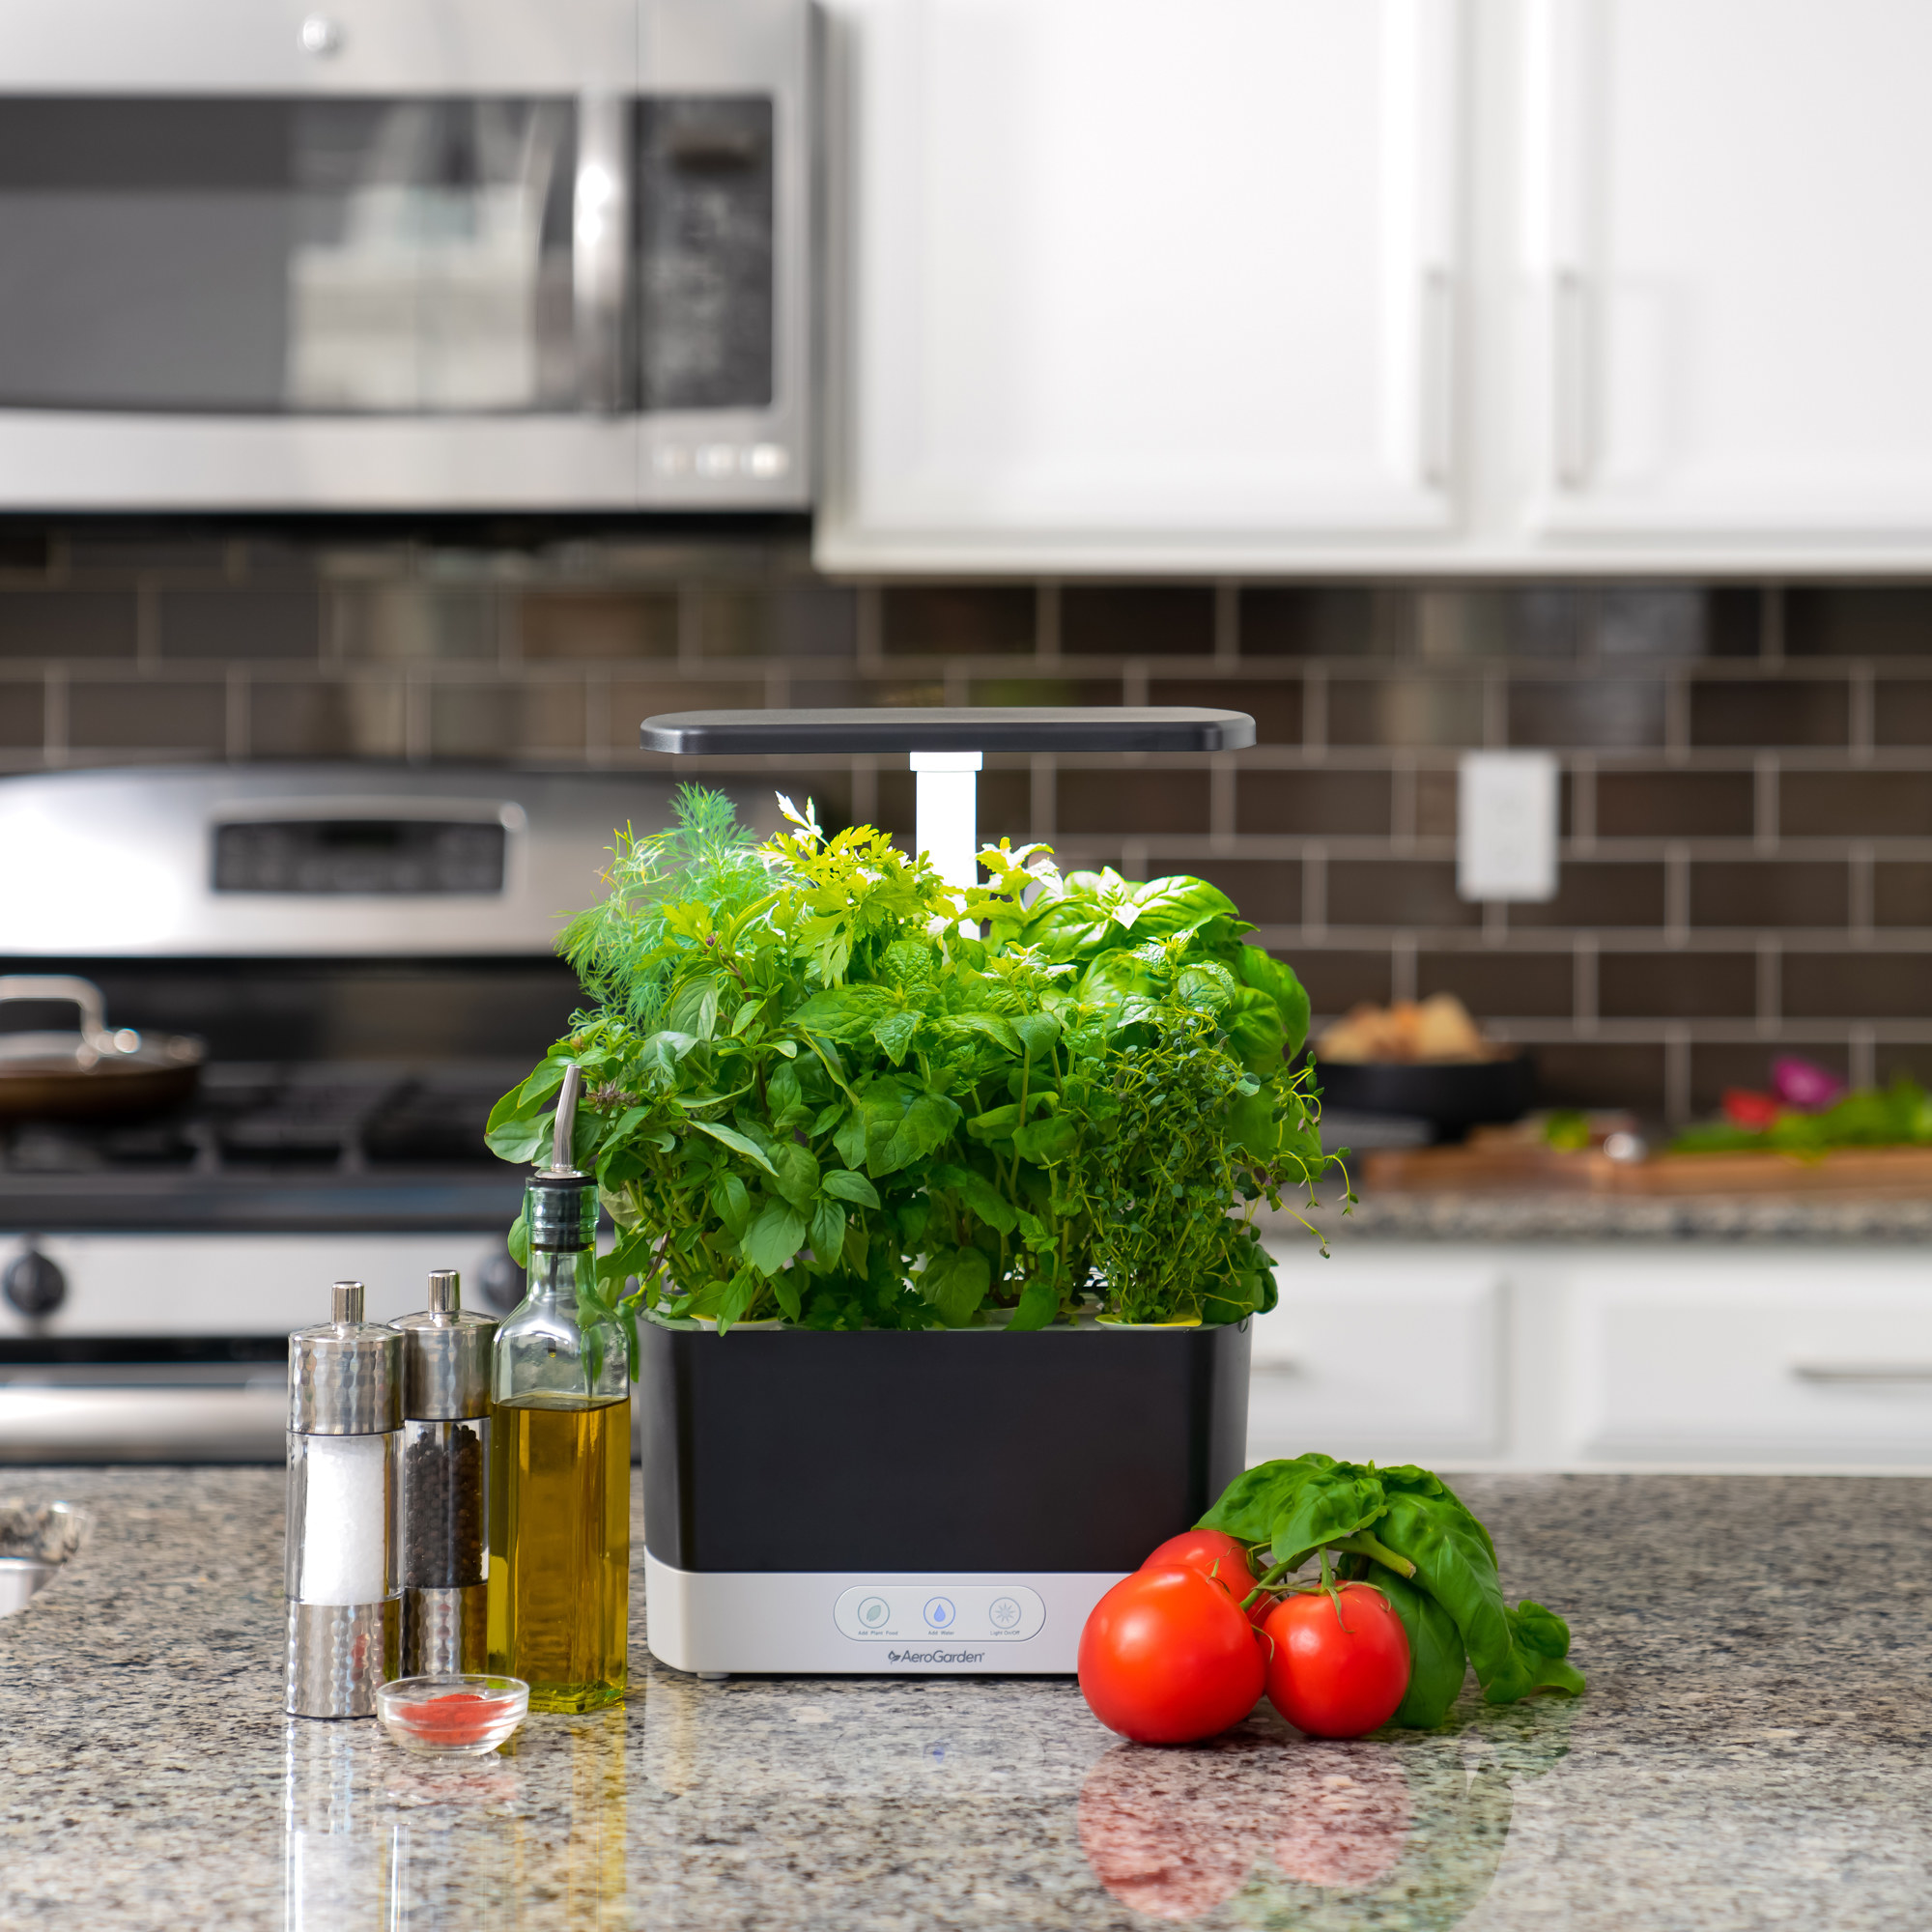 The Aerogarden, full of herbs, with some spices and vegetables in a kitchen